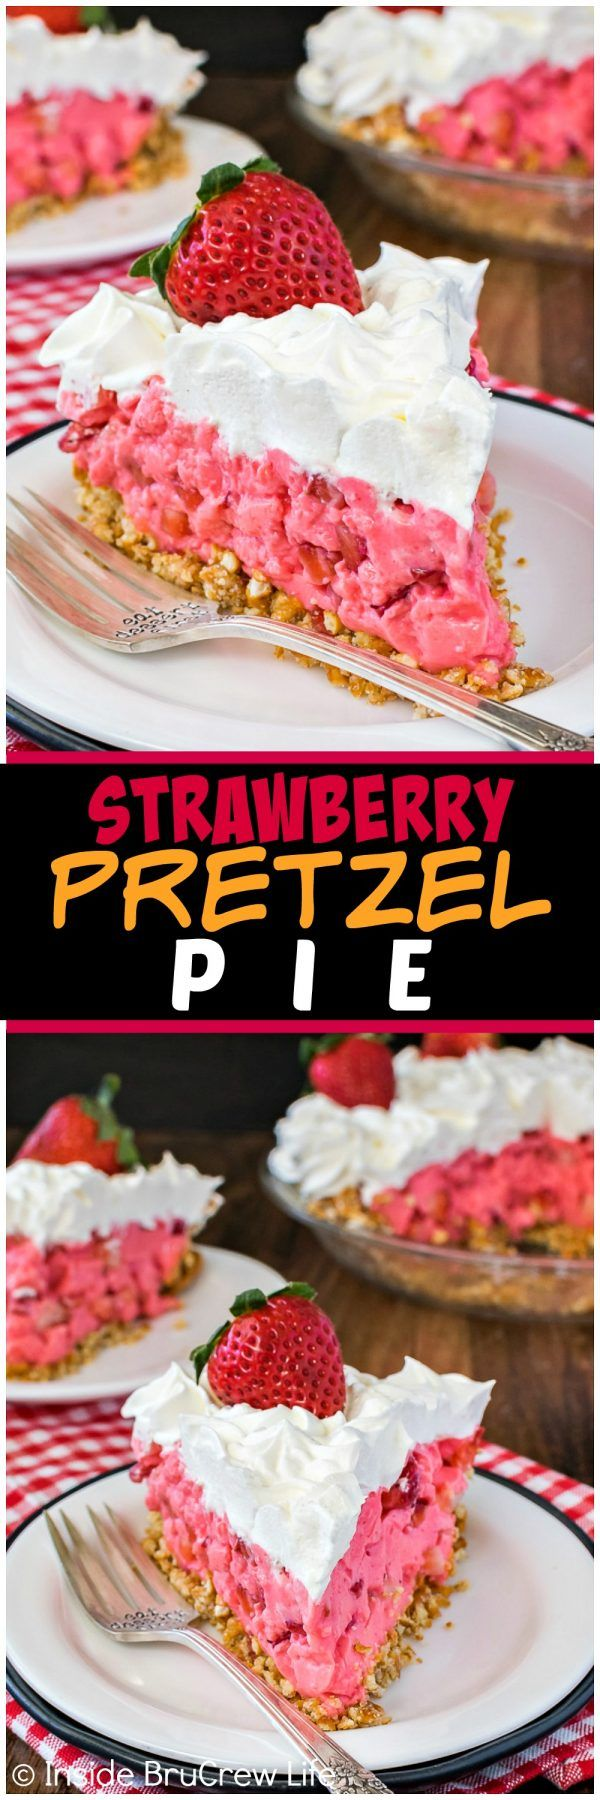 Strawberry Pretzel Pie - a sweet and salty crust and a creamy strawberry filling makes this easy no bake pie recipe a fun spring or summer dessert!!